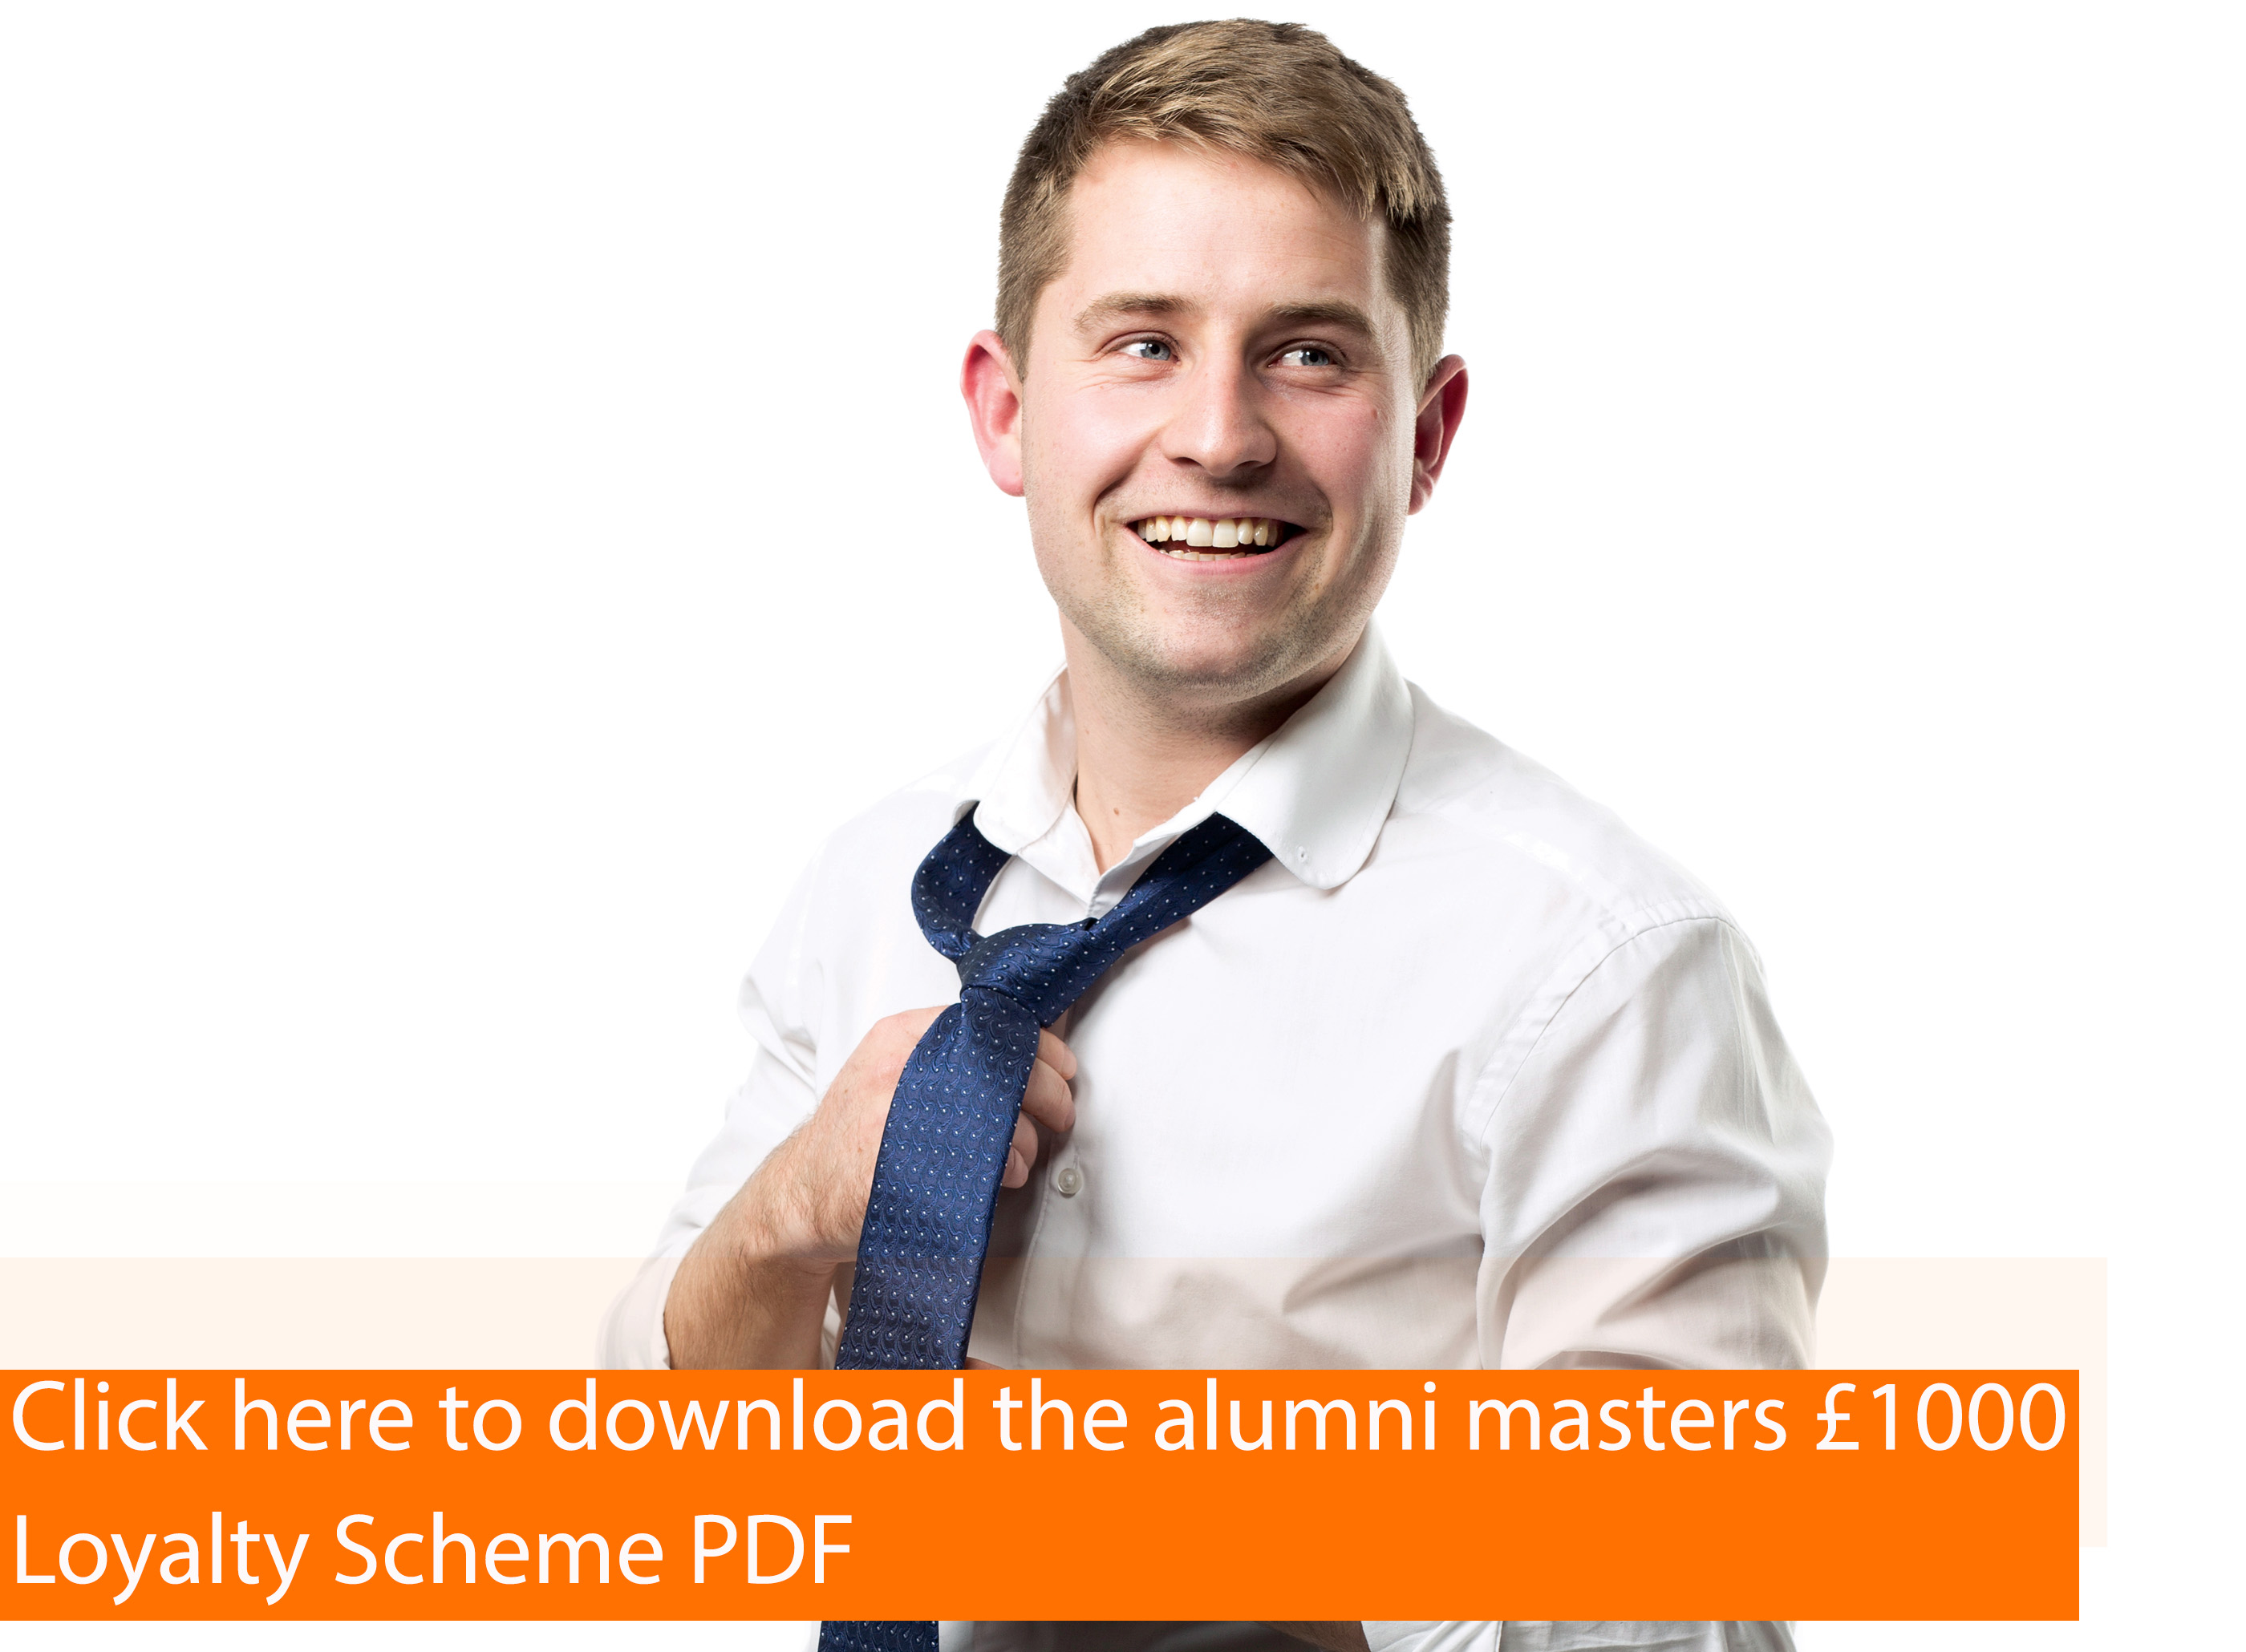 Alumni loyalty scheme